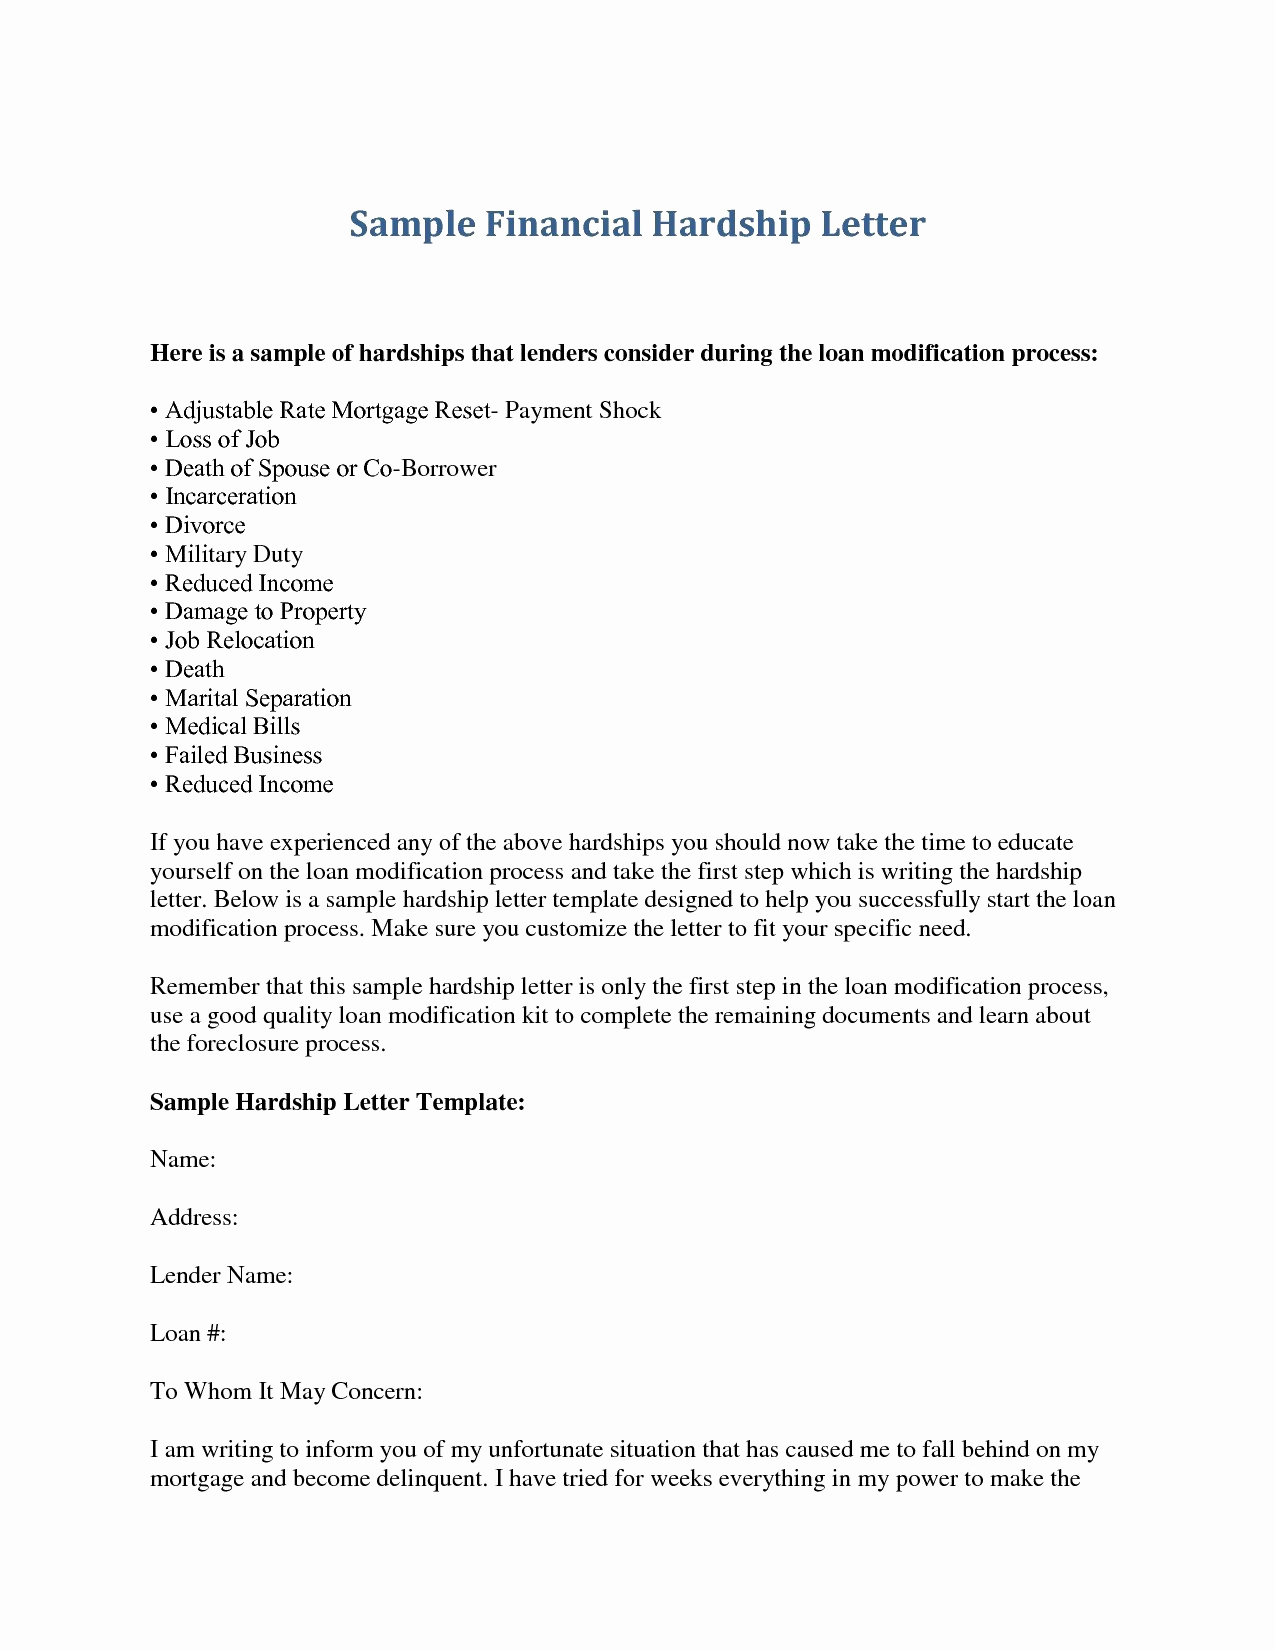 mortgage hardship letter template Collection-Immigration Hardship Letter for A Friend New Sample Good Moral Character Letter for Medical School Archives 6-n